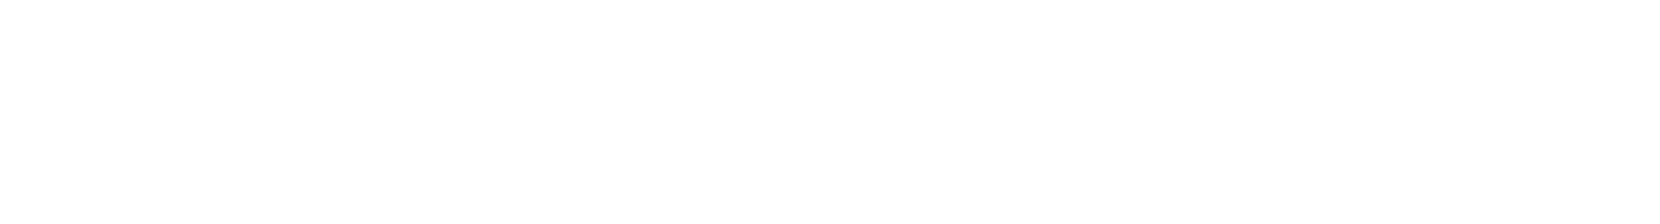 up to 40% off lighting + free shipping prices reflect discount